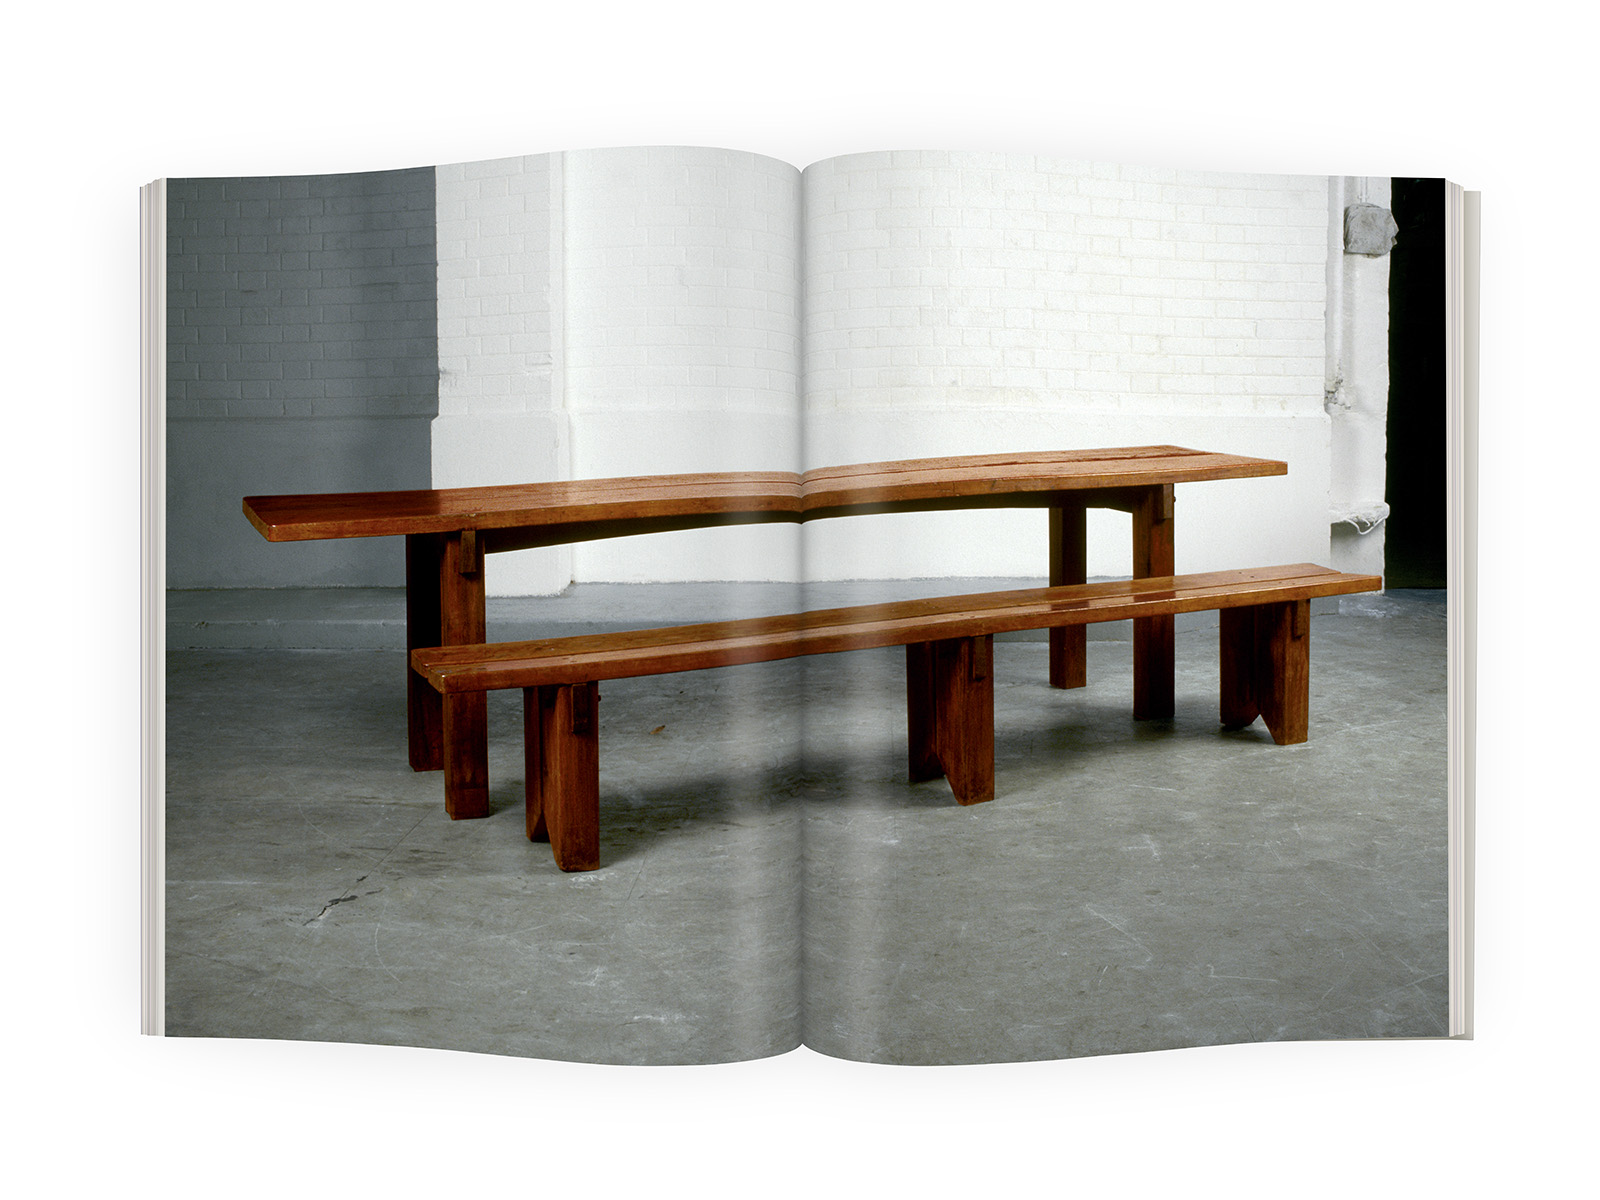 galerieDOWNTOWN - Catalogue Charlotte Perriand Bresil p48-49